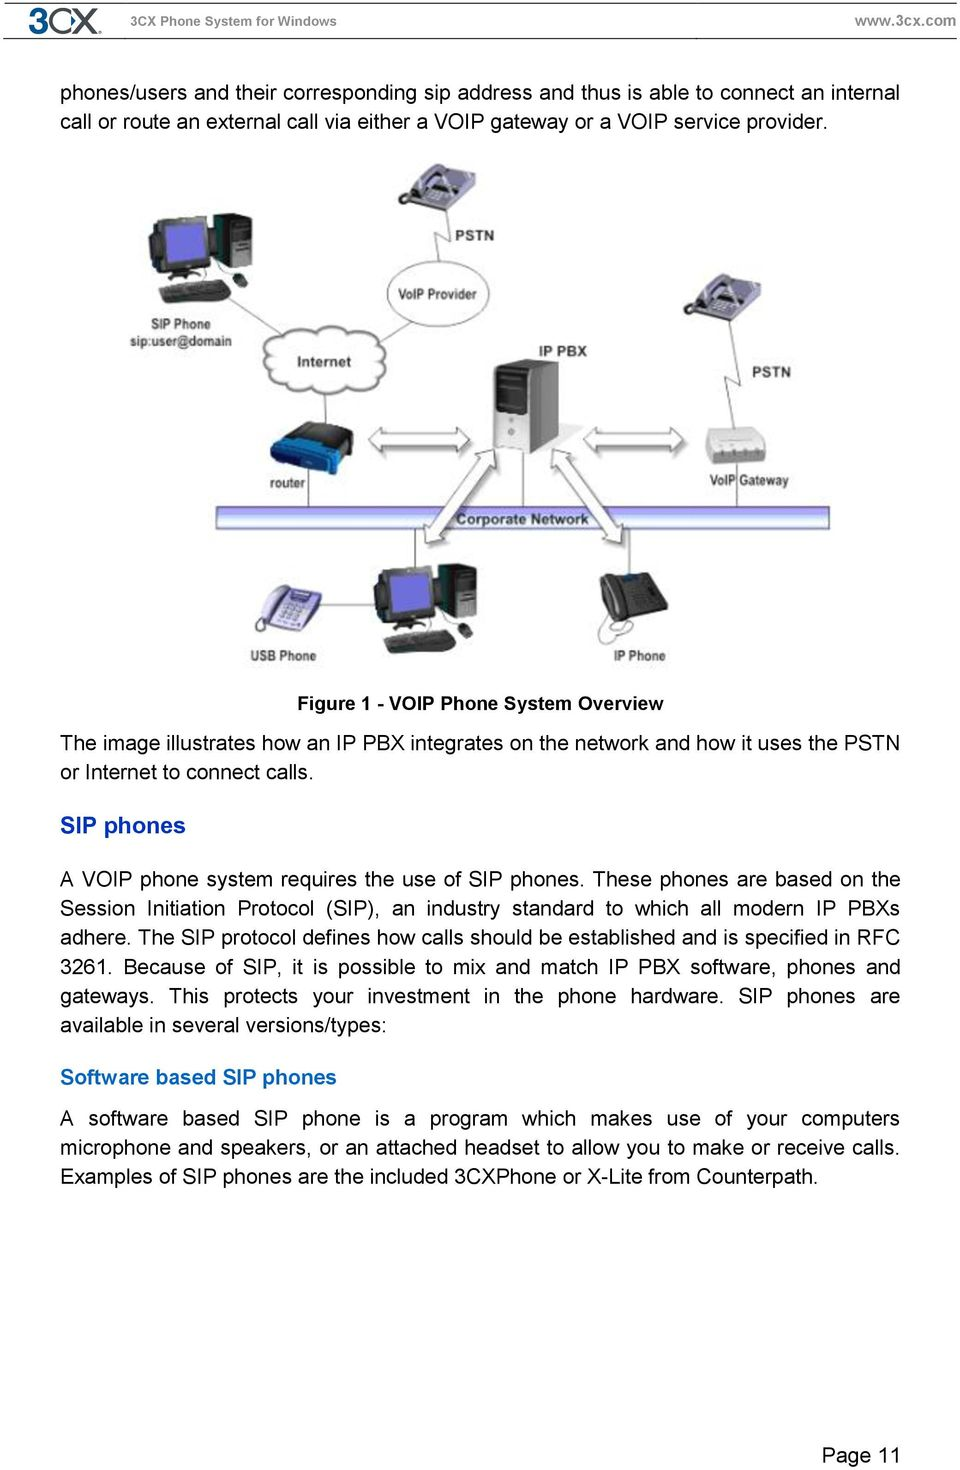 SIP phones A VOIP phone system requires the use of SIP phones. These phones are based on the Session Initiation Protocol (SIP), an industry standard to which all modern IP PBXs adhere.